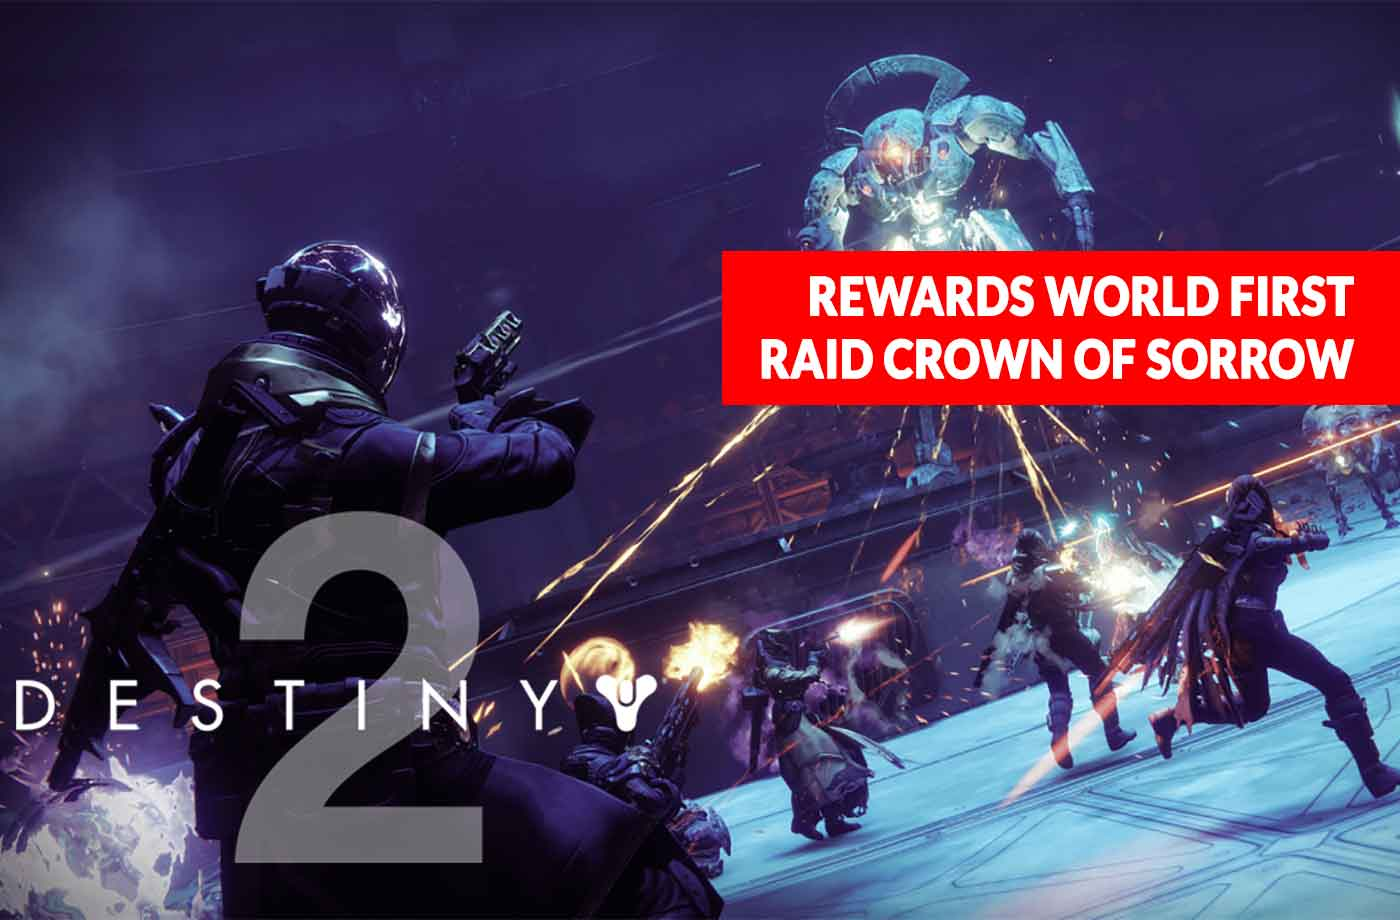 Destiny 2 Crown of Sorrow raid list of awards for the world first